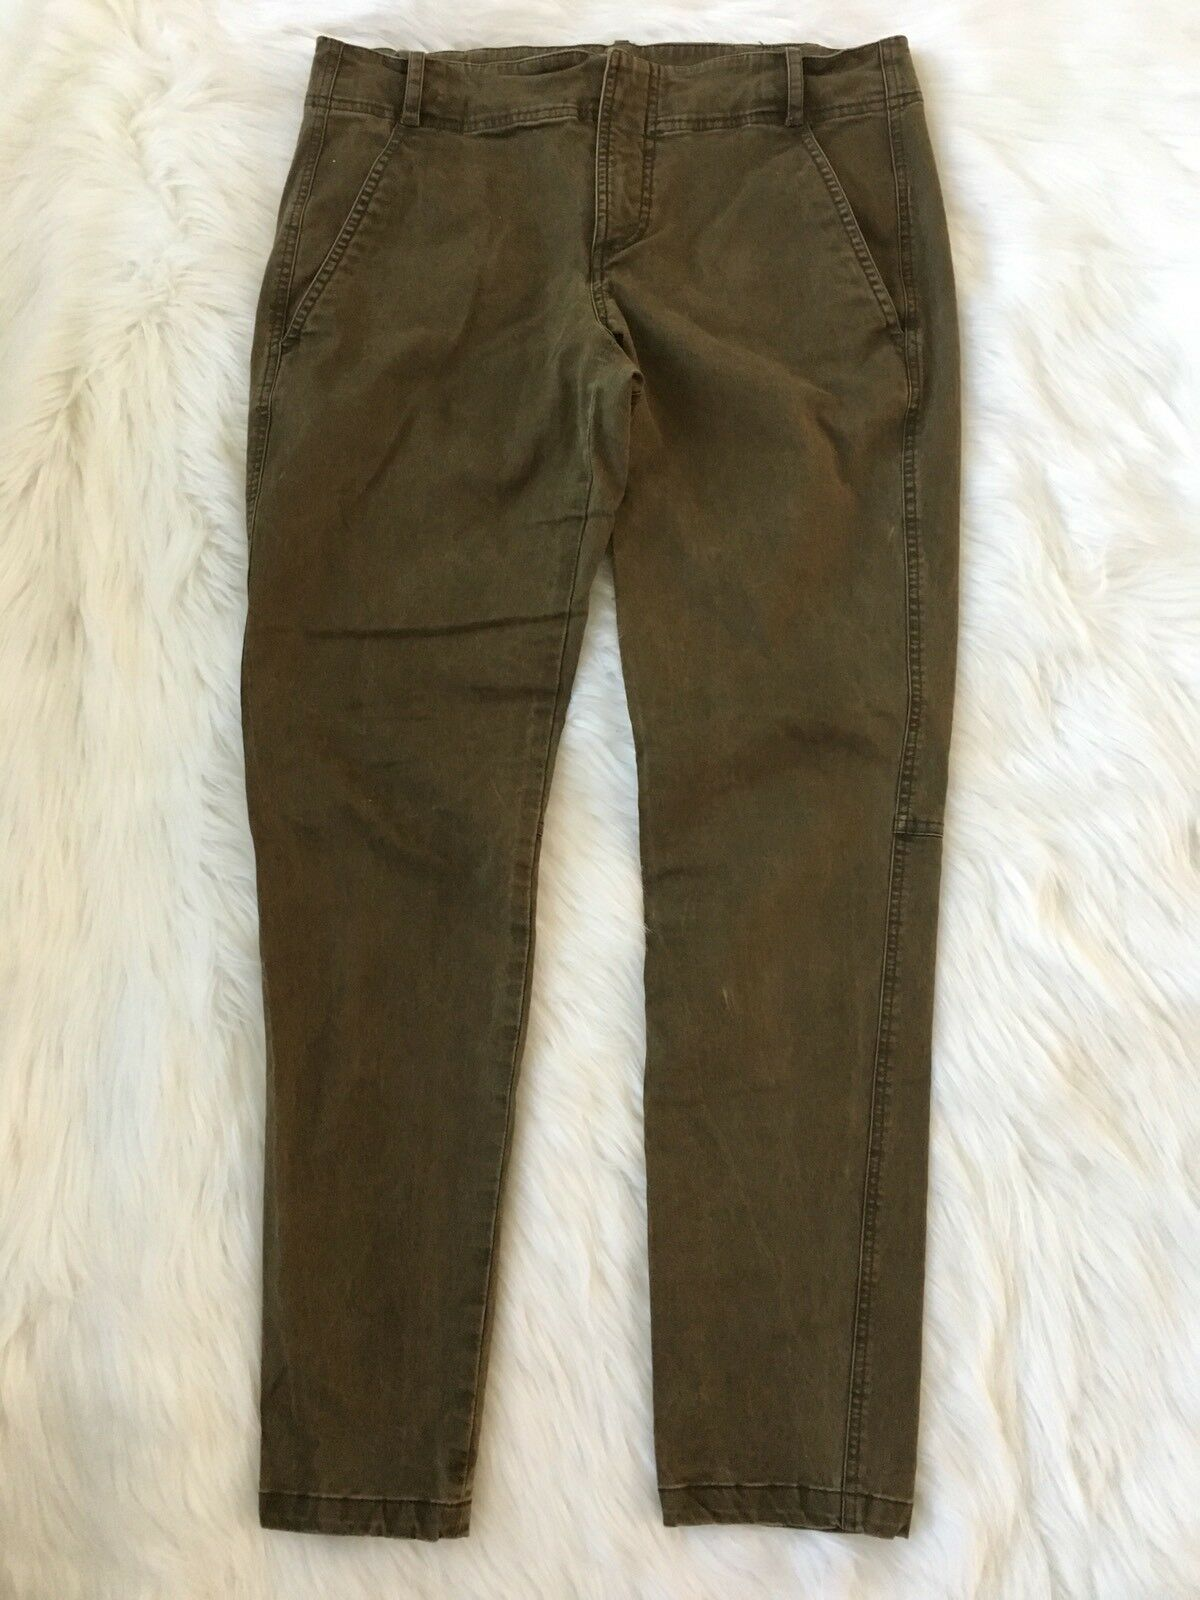 A.L.C. Women's Size 10 Skinny Utility Pants Washed Cotton Blend Olive Green USA